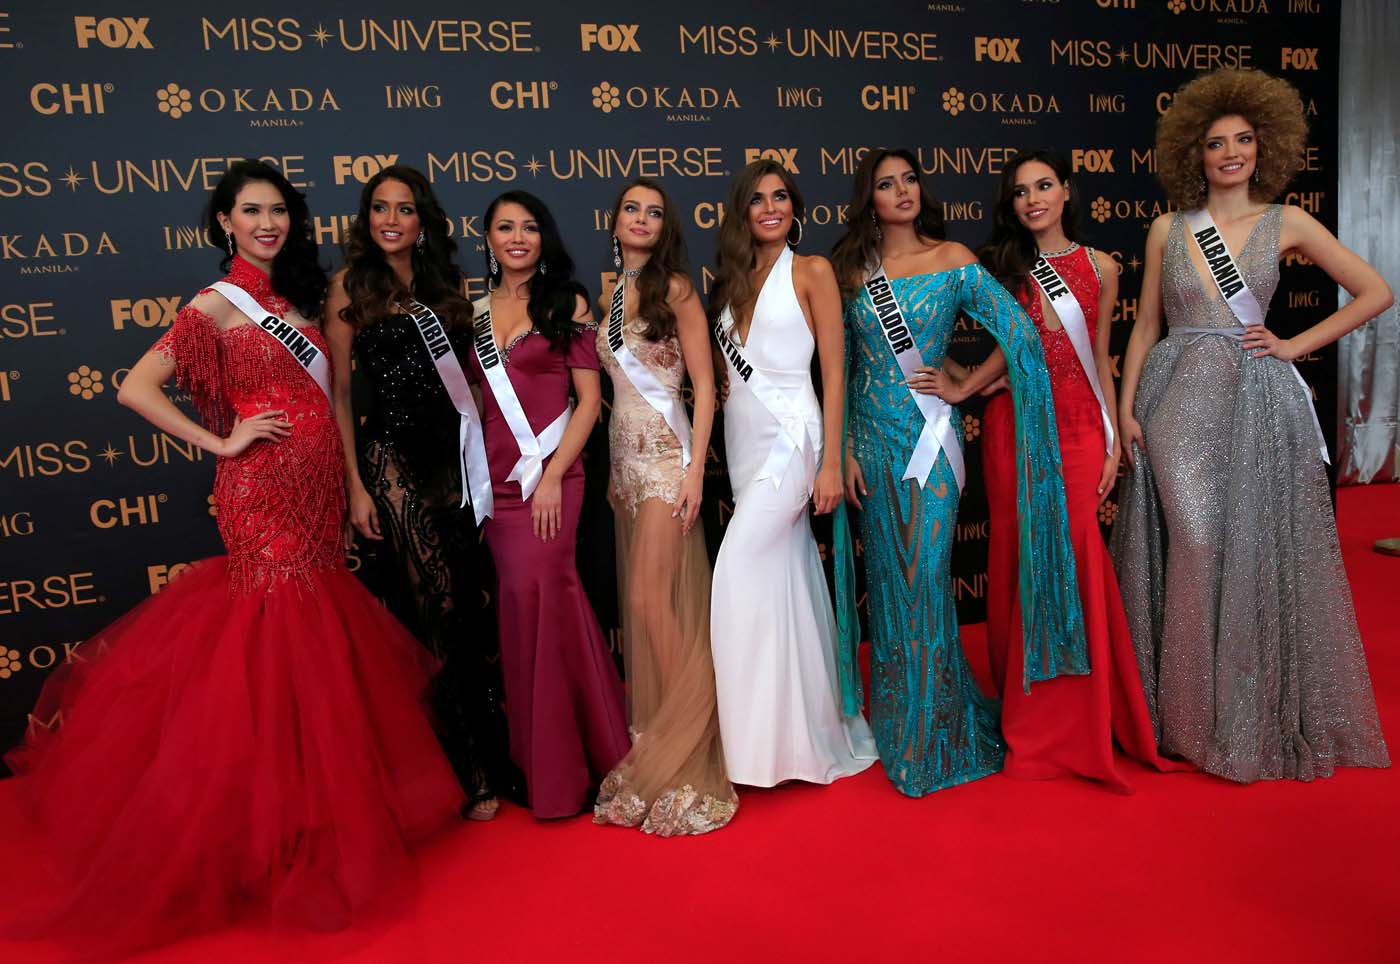 Miss Universe candidates pose for a picture during a red carpet inside a SMX convention in metro Manila, Philippines January 29, 2017. In Photo from L-R: Miss China Li Zhenying, Miss Colombia Andrea Tovar, Miss Finland Shirly Karvinen, Miss Belgium Stephanie Geldhof, Miss Argentina Estefania Bernal, Miss Ecuador Connie Jimenez and Miss Chile Catalina Caceres. REUTERS/Romeo Ranoco